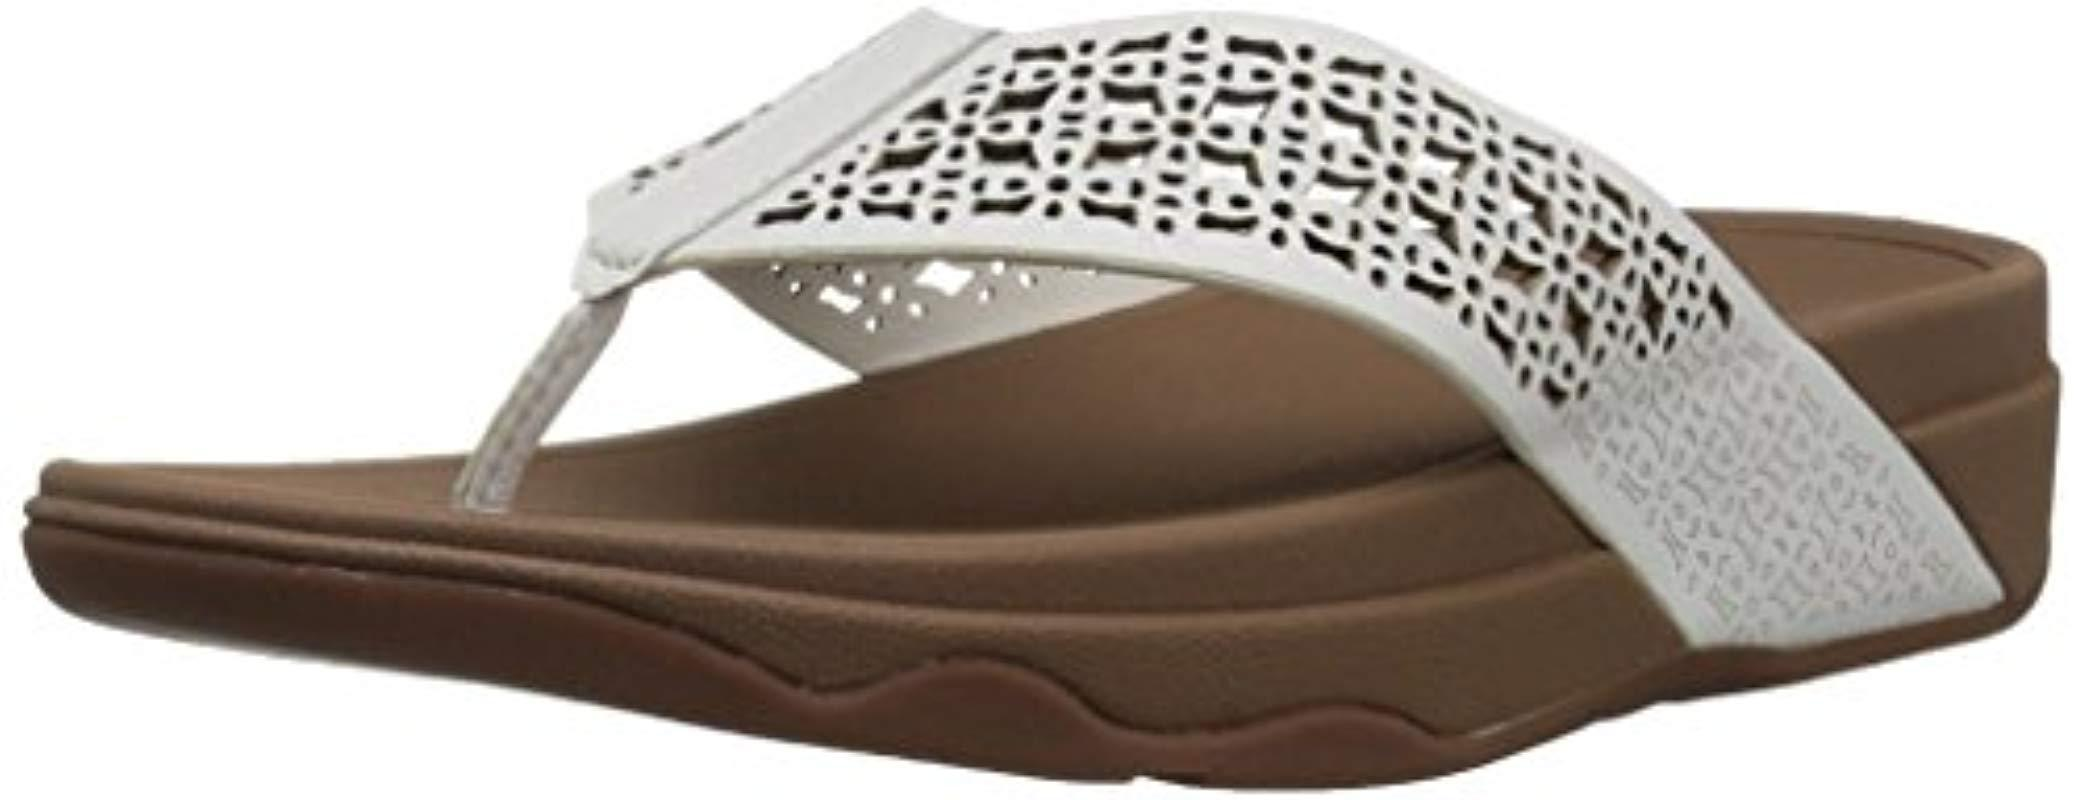 7860dac5a Lyst - Fitflop Leather Lattice Surfa Floral Flip Flops - Save 14%